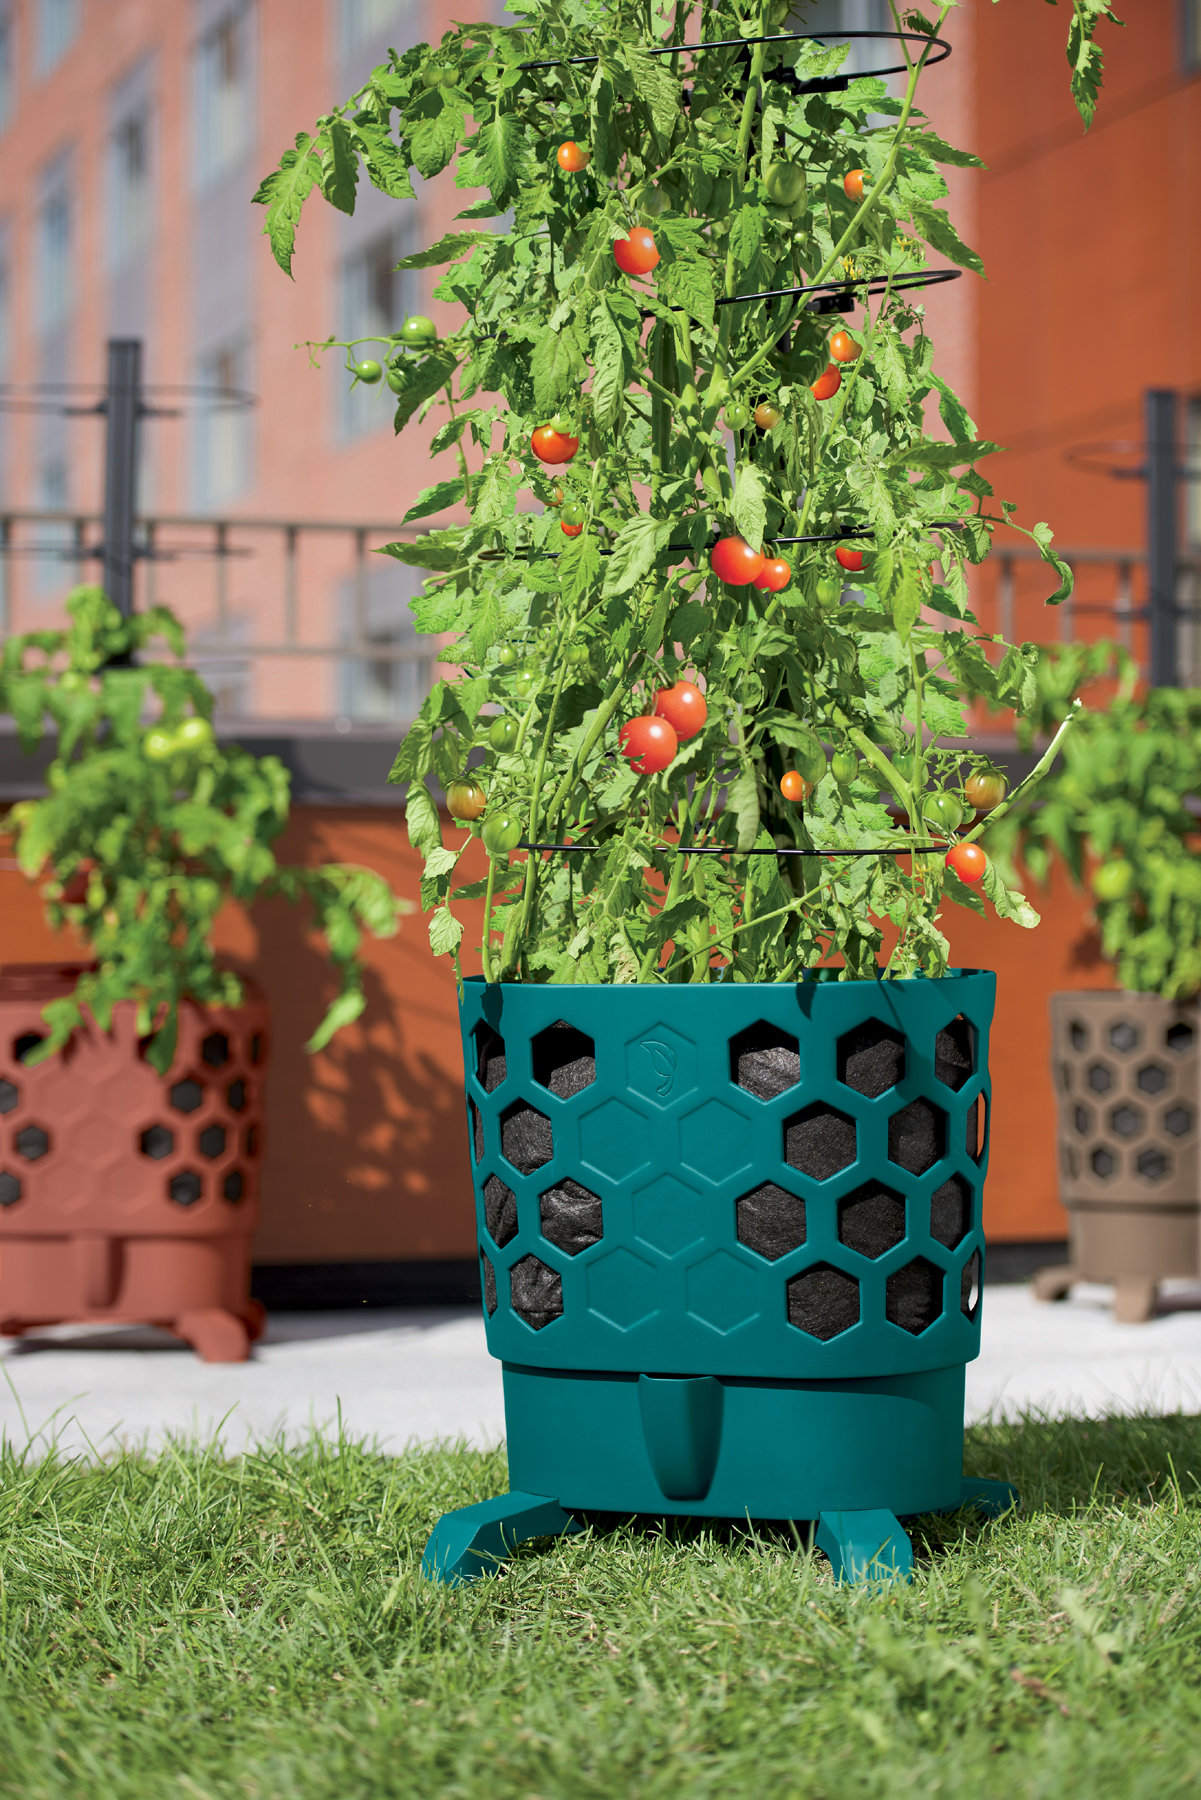 Grow abundant tomato harvest in a pot